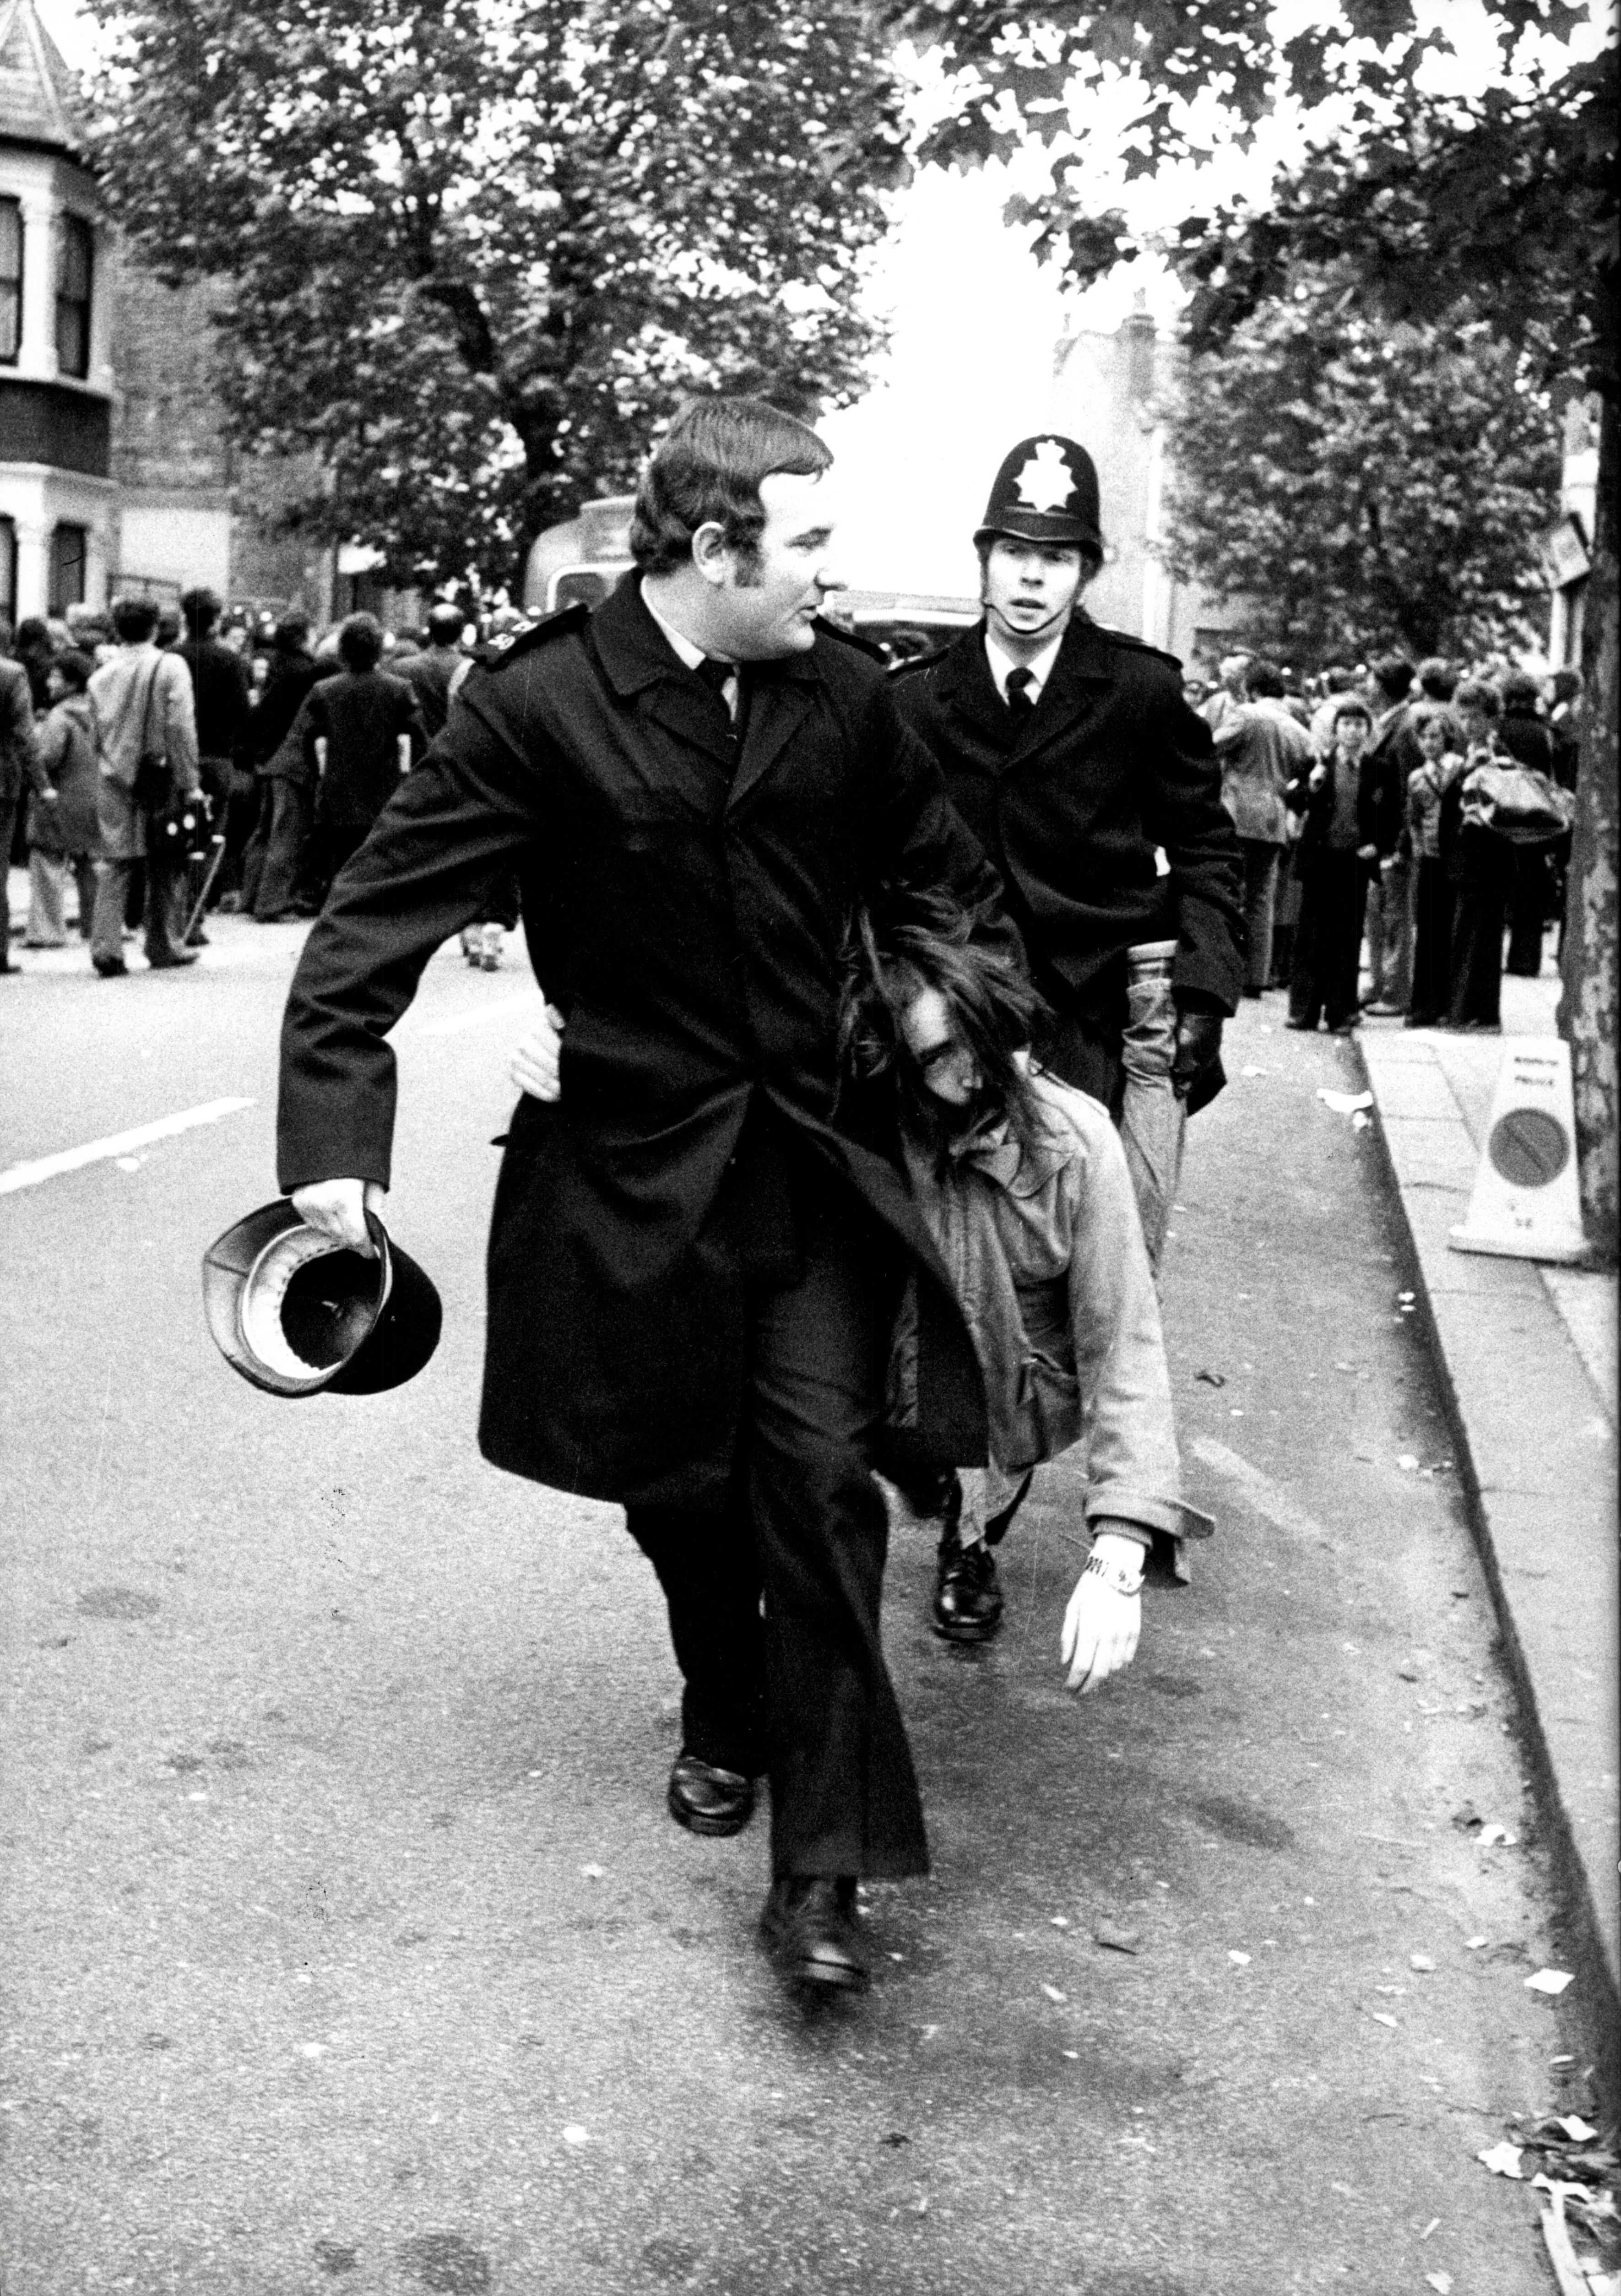 Police Arrest A Picket Outside The Grunwick Plant In Willesden London. The Grunwick Dispute Was An Industrial Dispute Involving Trade Union Recognition At The Grunwick Film Processing Laboratories Which Led To A Two-year Strike Between 1976?1978.